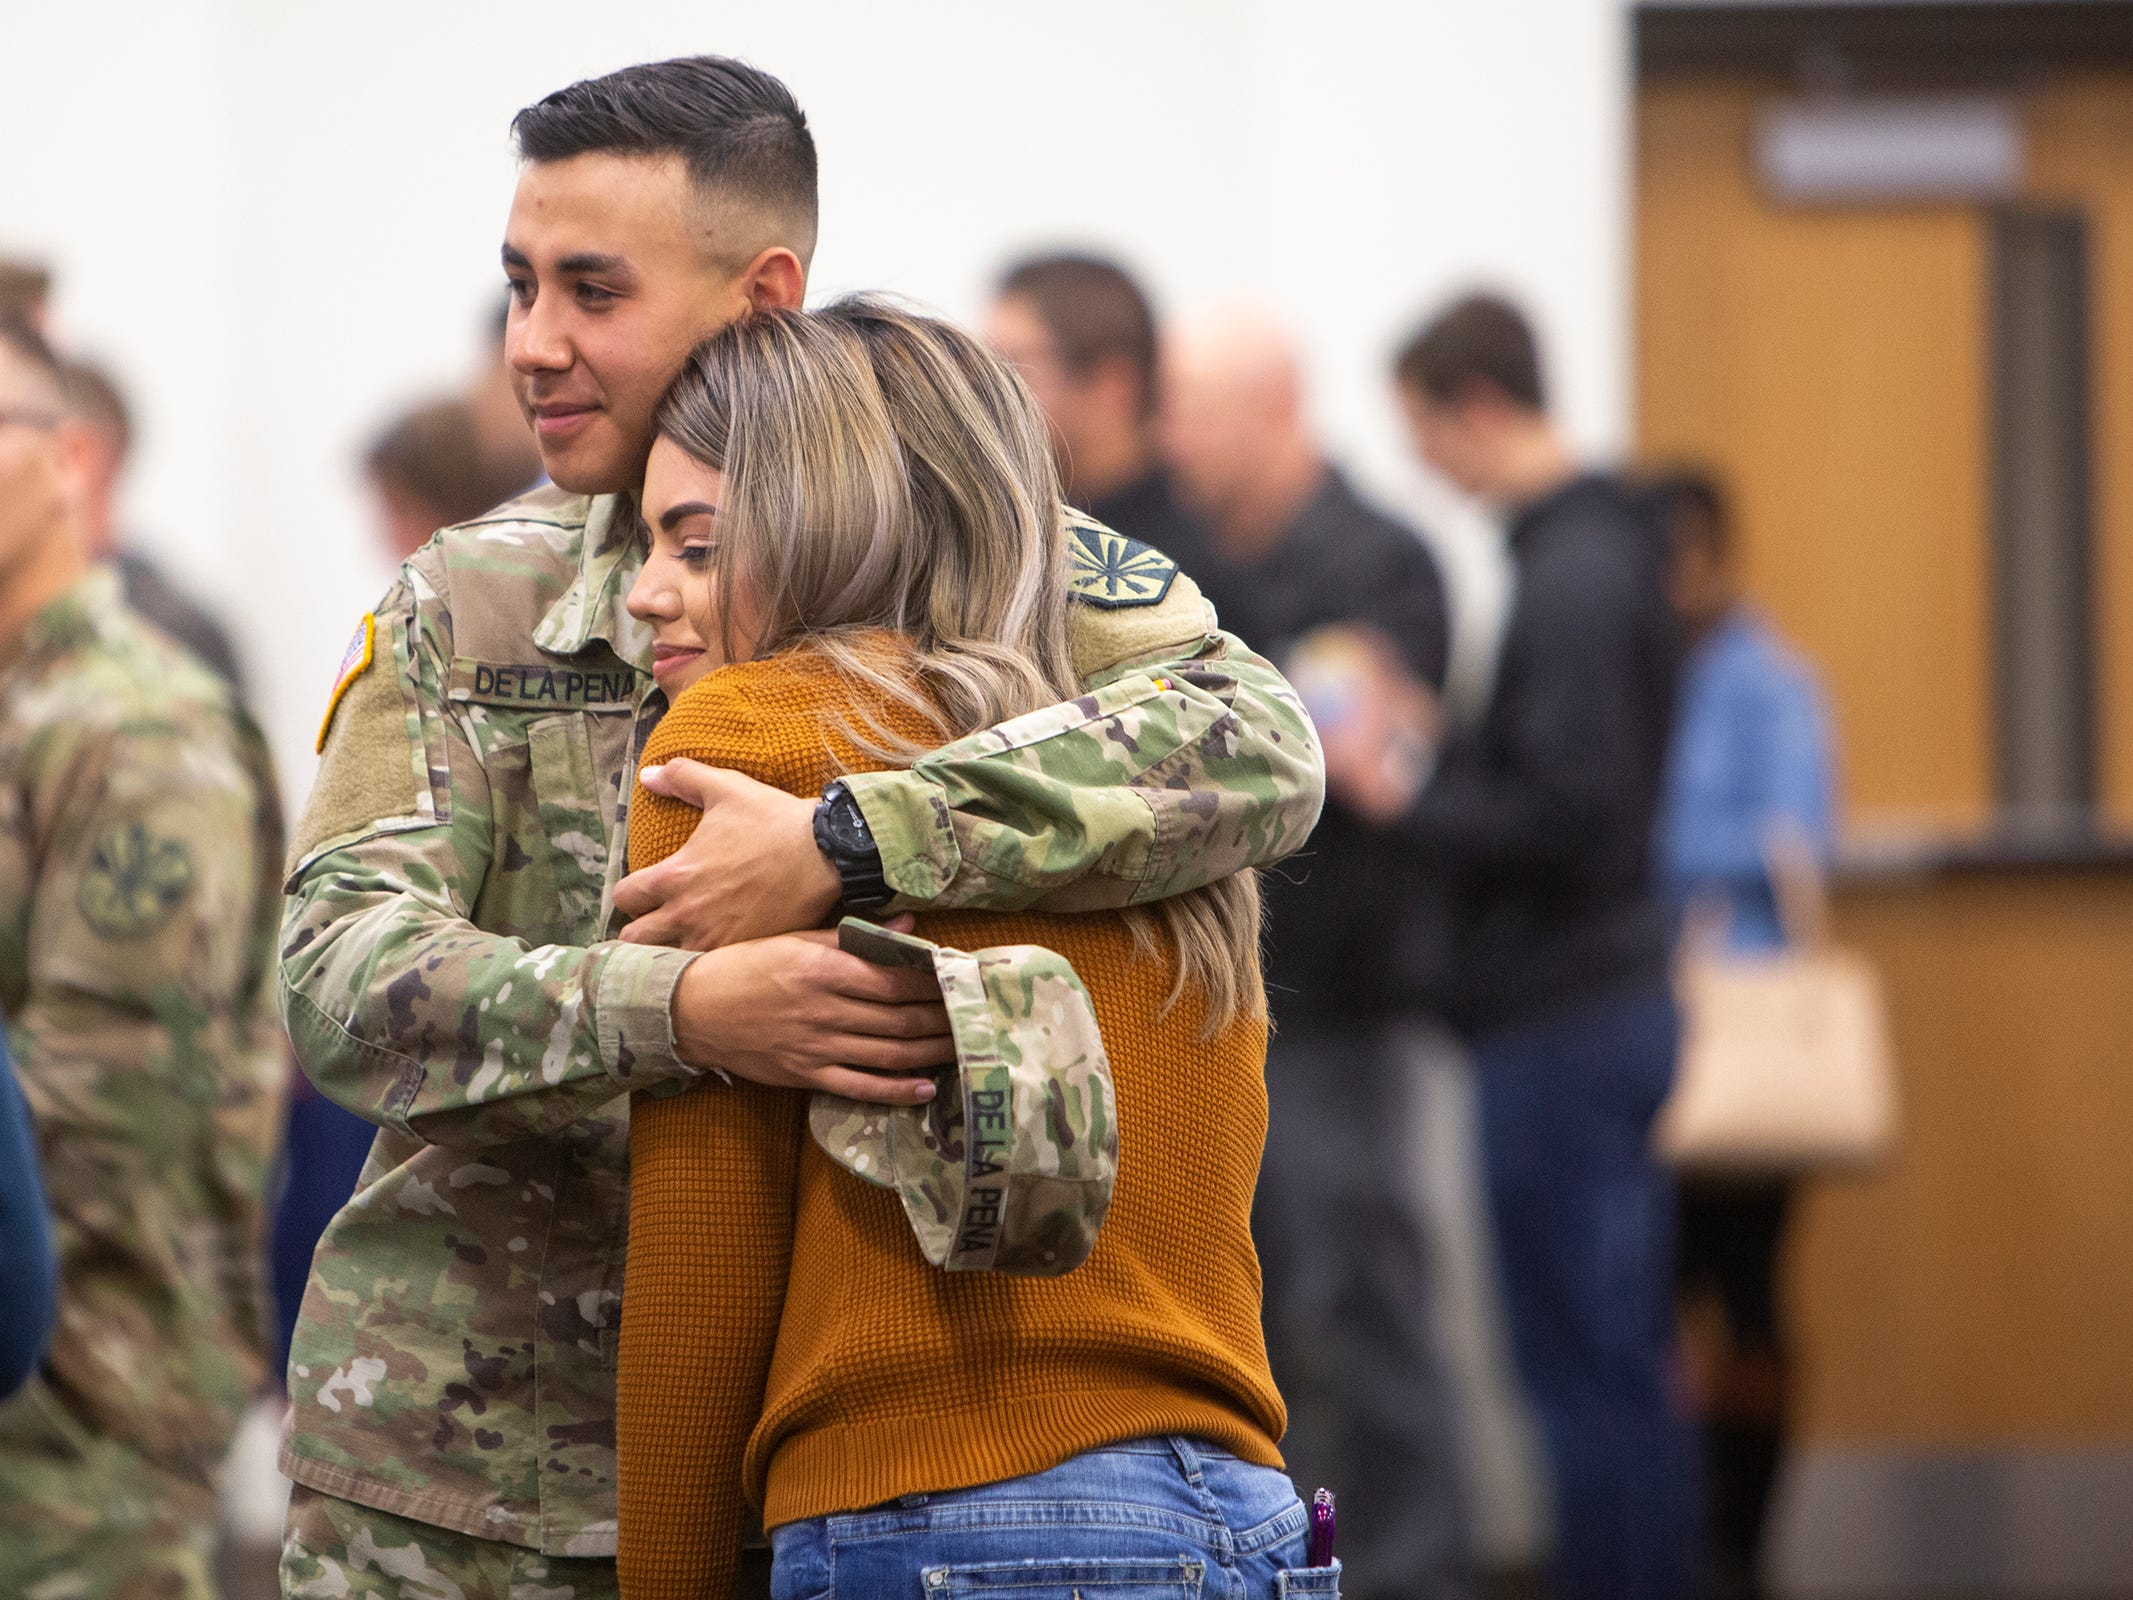 Spc. Edgar De La Peña gives a hug to his girlfriend of five years, Fabiola Burciaga, before the deployment ceremony for the 253rd Engineer Battalion at Papago Park Military Reservation on Sunday, Feb. 24, 2019. The soldiers boarded buses immediately after the ceremony.